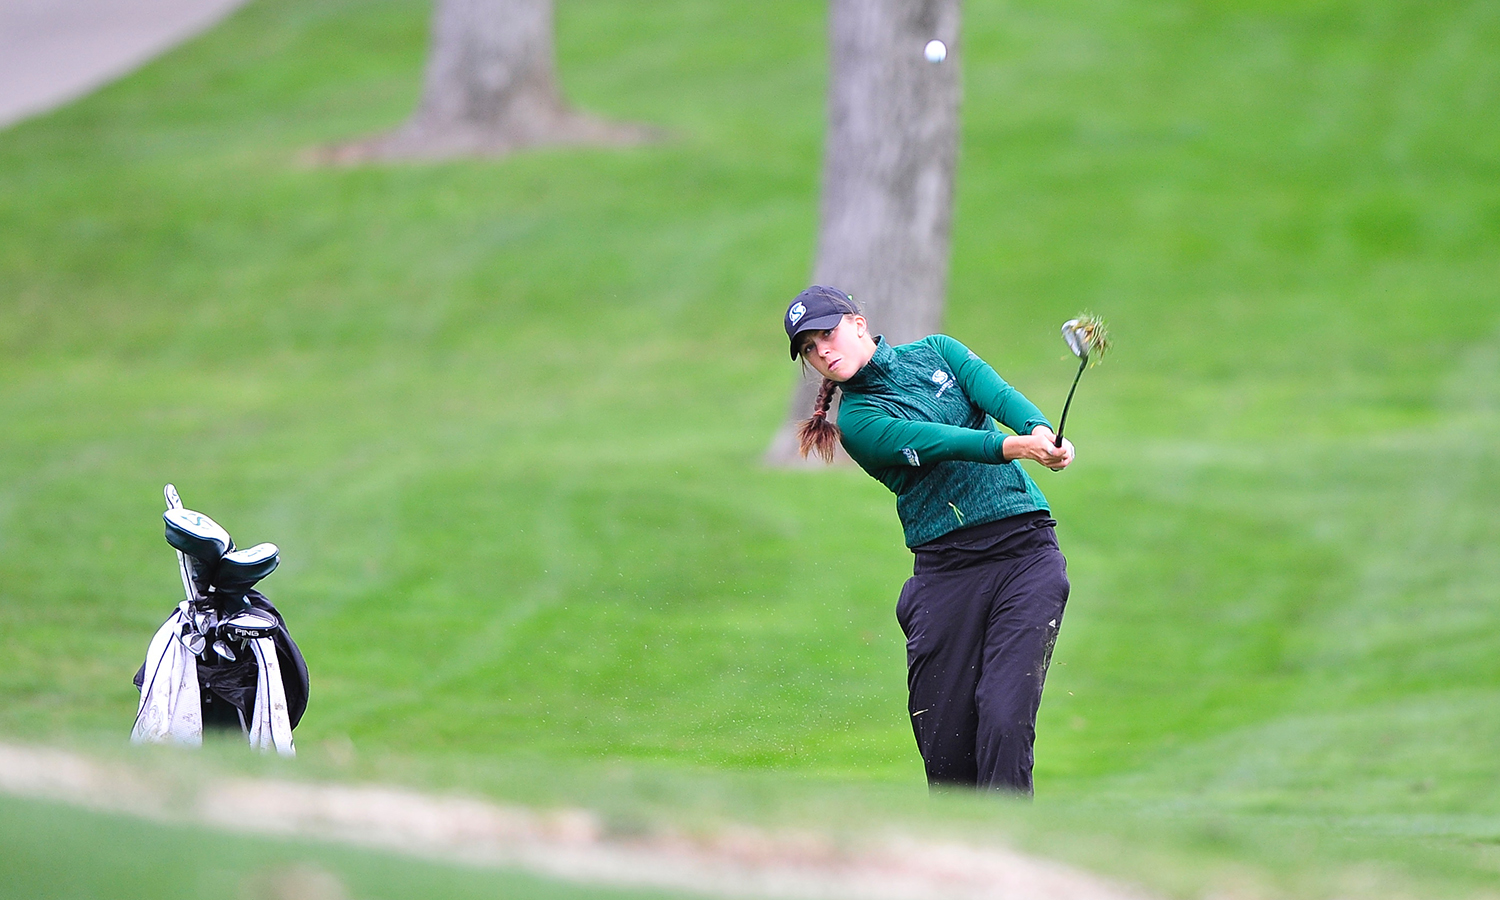 WOMEN'S GOLF MATCHES SCORE AT GOLFWEEK CONFERENCE CHALLENGE, VIDEN SHOOTS 73